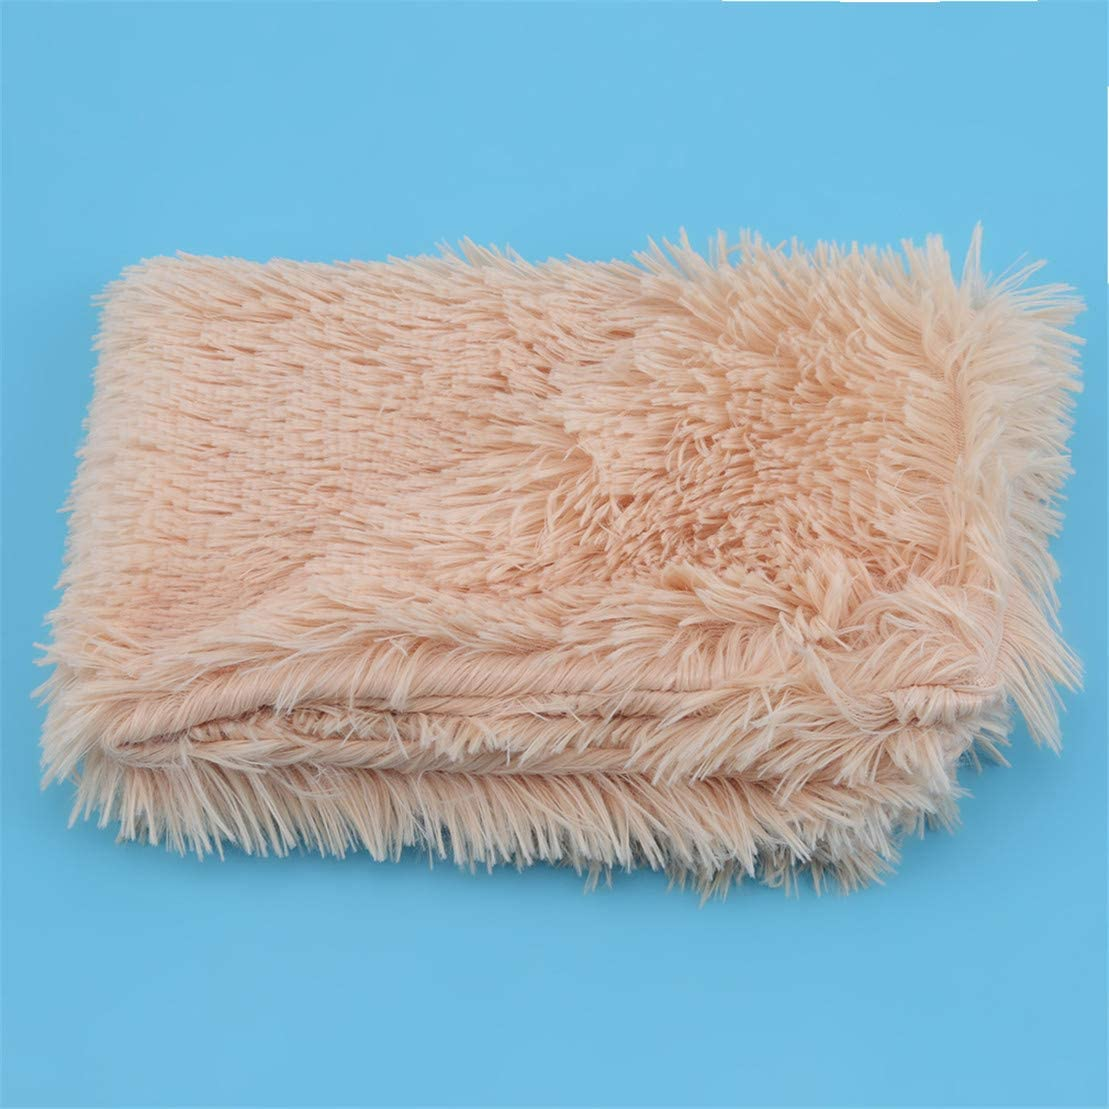 Grey-100 * 80cm Kissherely Long Plush Pet Blanket Soft Fluffy Blankets for Dog Cat Pets Bed Mats Winter Sleeping Soft Thin Covers